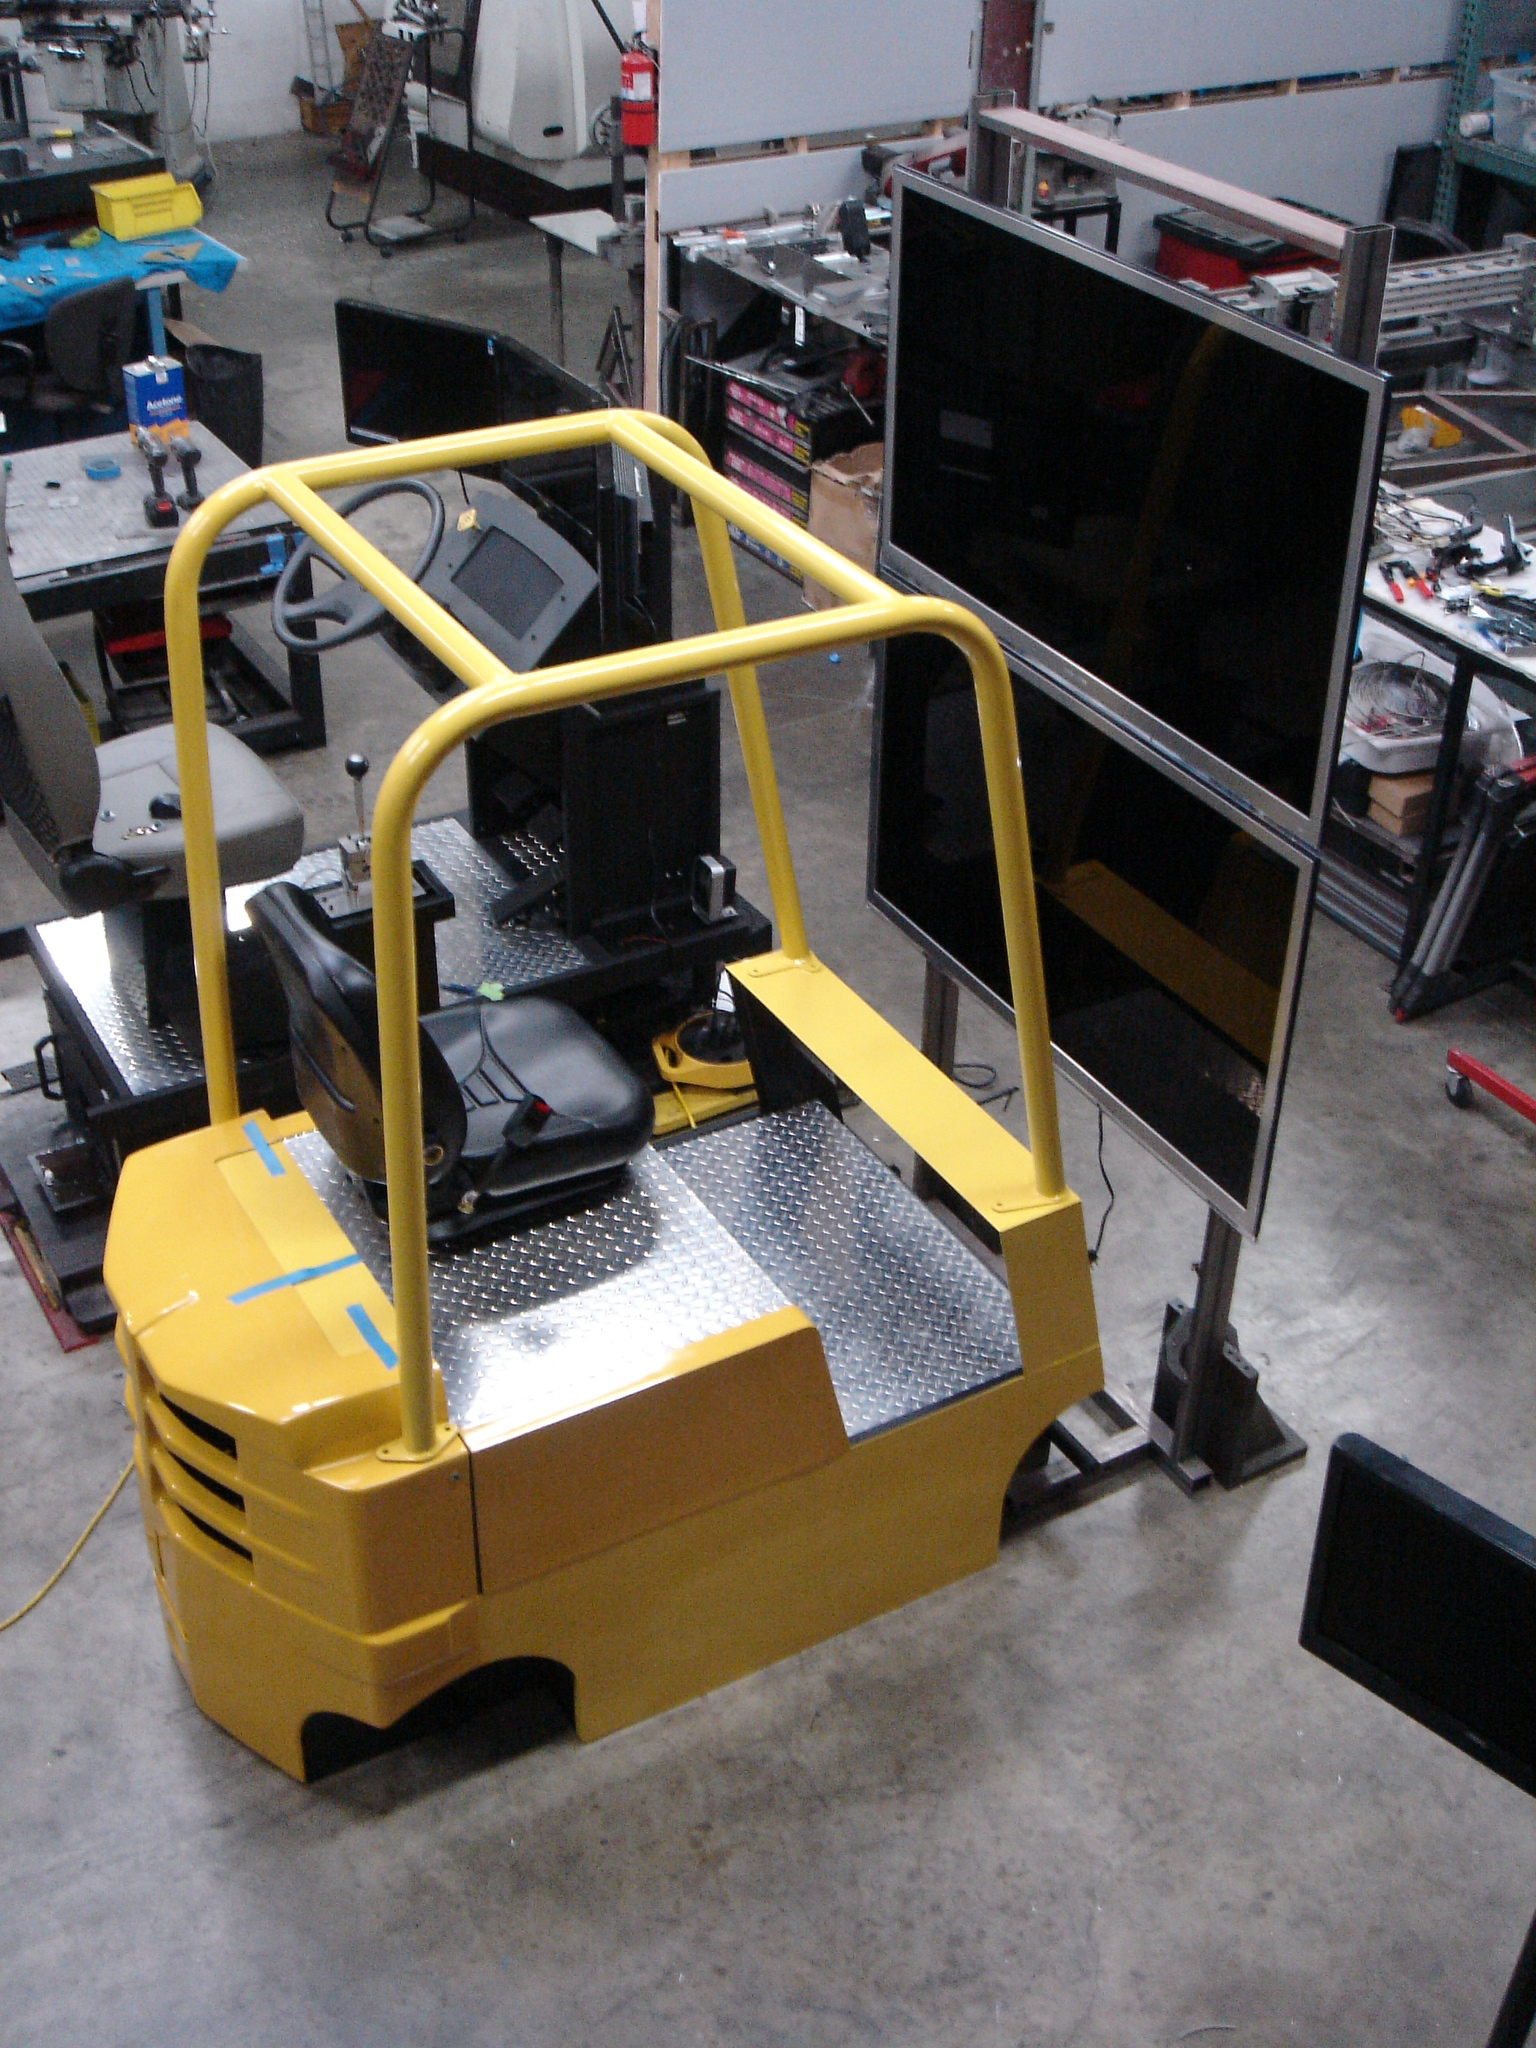 Cab Simulator Assembly